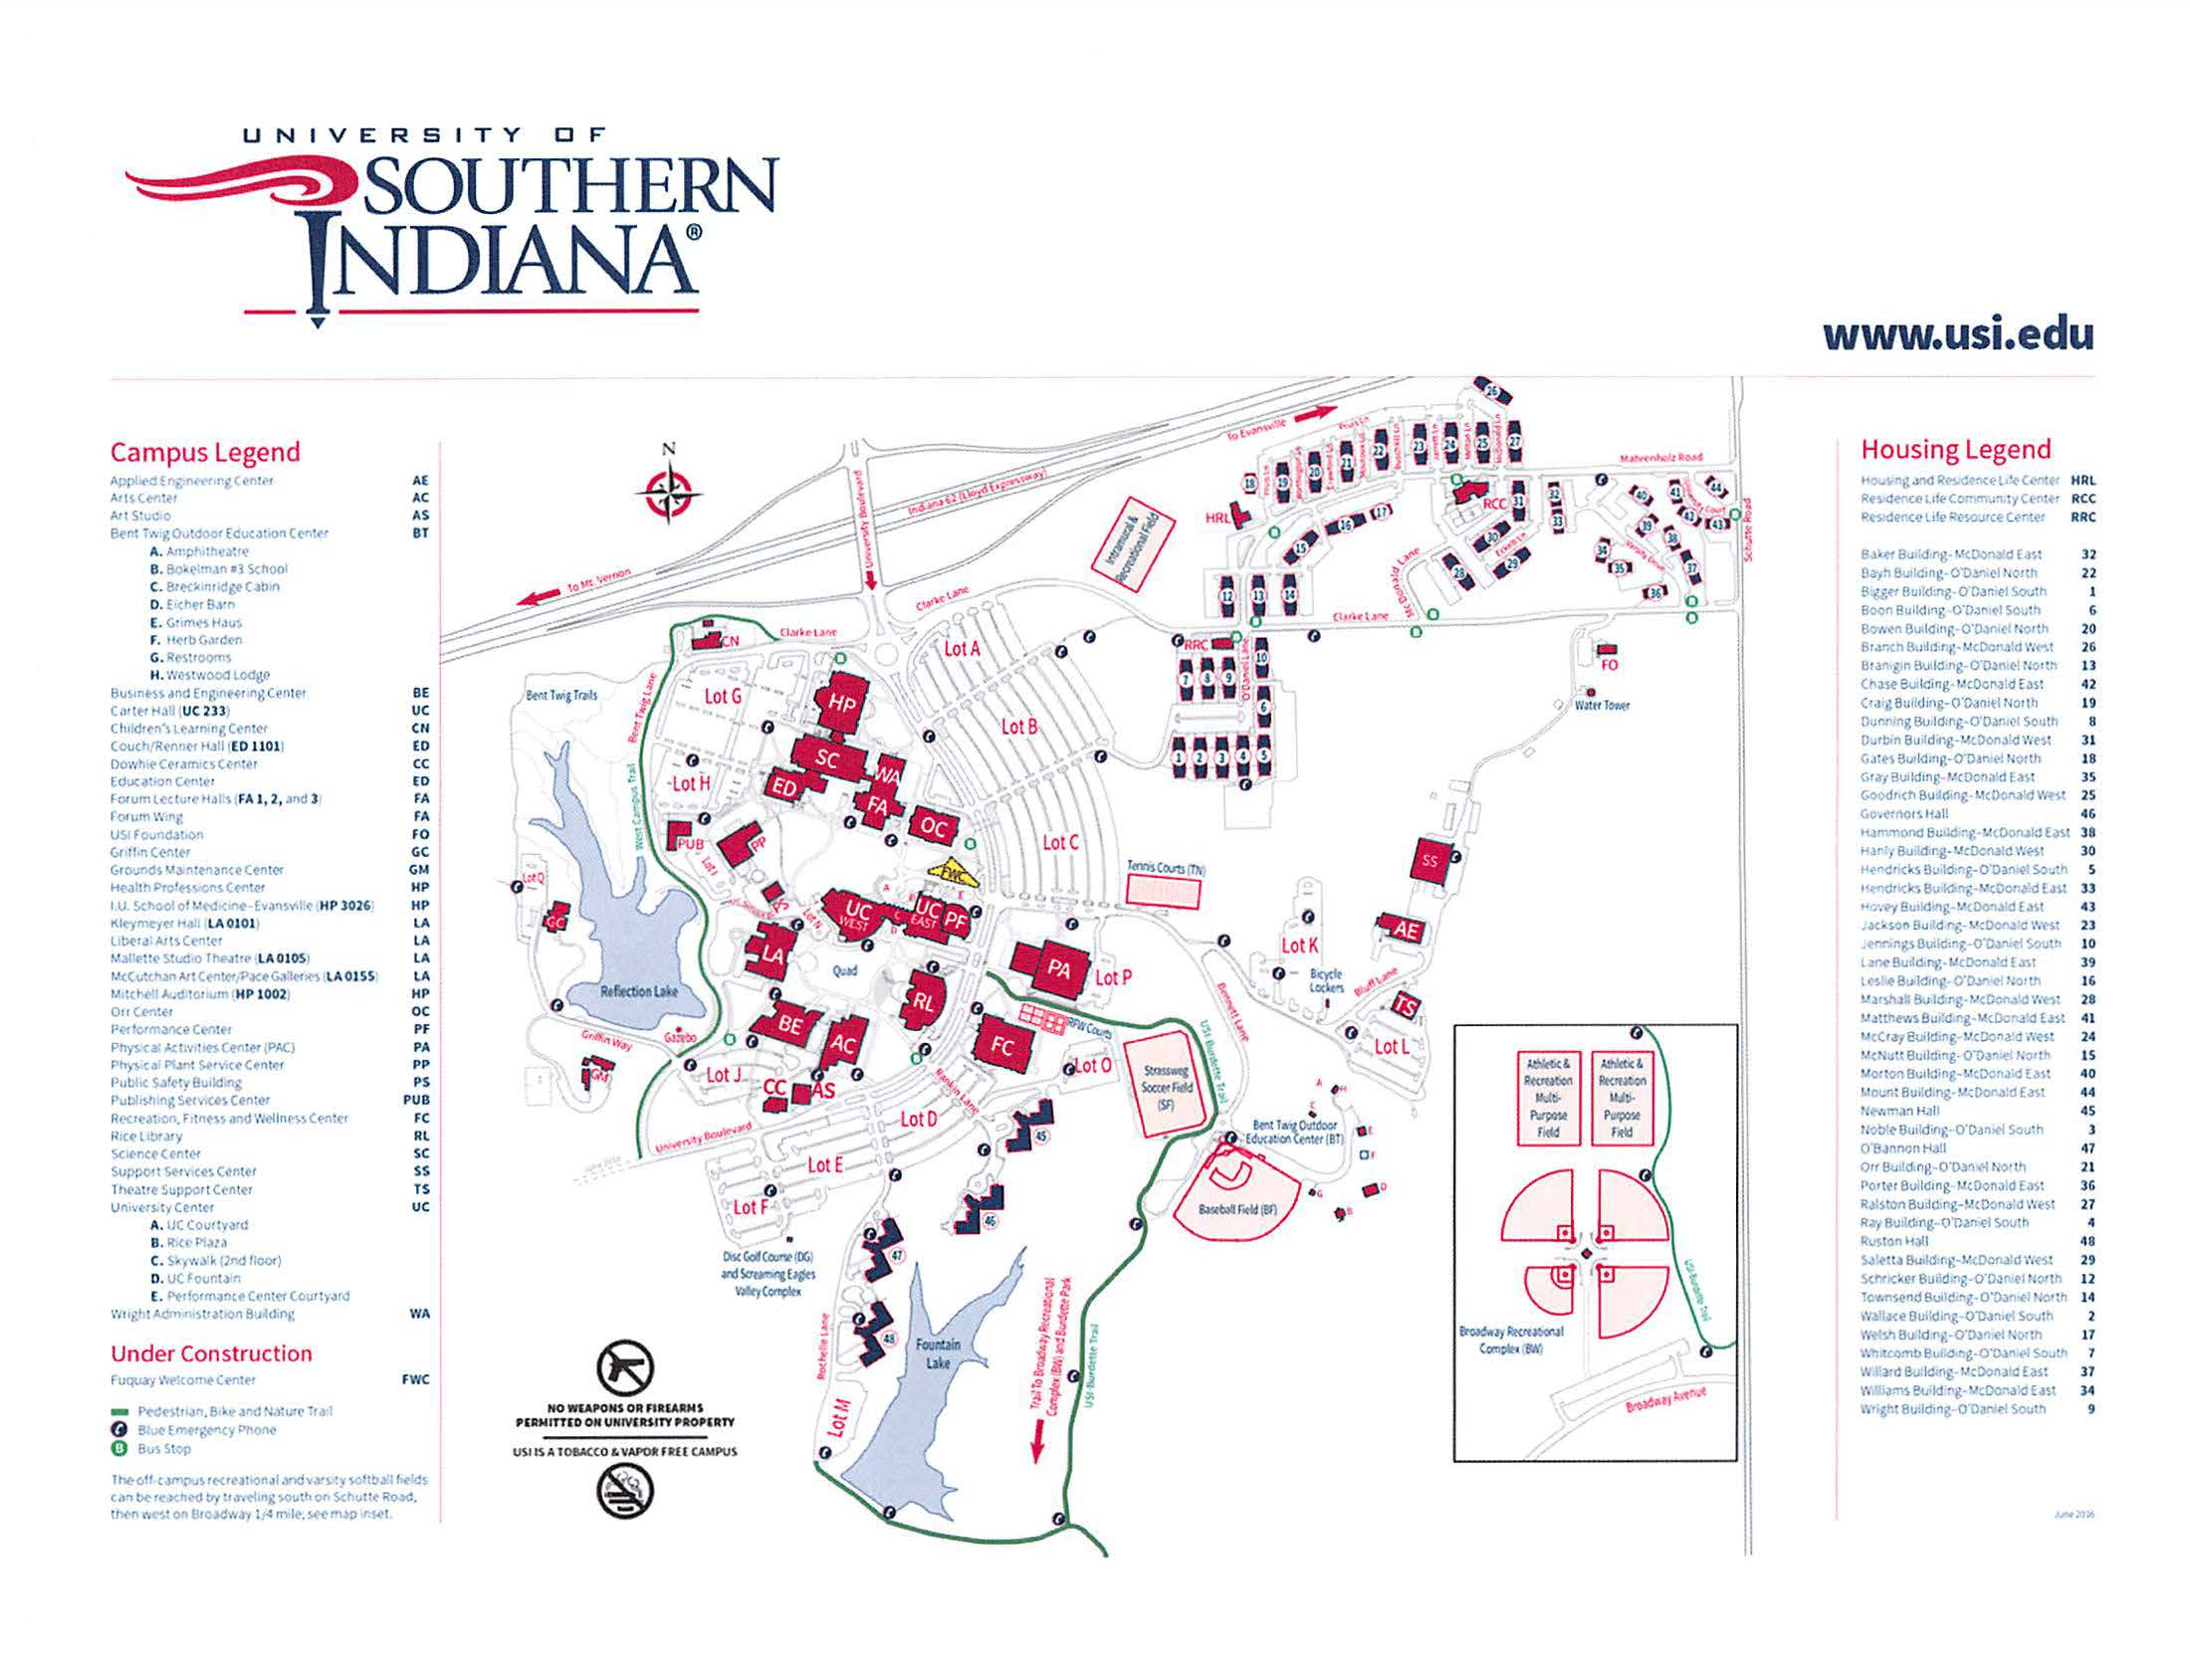 Registration - University of Southern Indiana on indiana university education, horry georgetown technical college campus map, bethany college campus map, u pitt campus map, indiana university dorms, indiana university bloomington campus, national institutes of health campus map, indiana university campus clock, indiana state university map, suny downstate campus map, iub map, indiana university logo, unt health science center campus map, dana-farber cancer institute campus map, indiana university campus desktop wallpaper, iu map, indiana university building map, indiana university residence halls, berklee college campus map, metropolitan state college campus map,